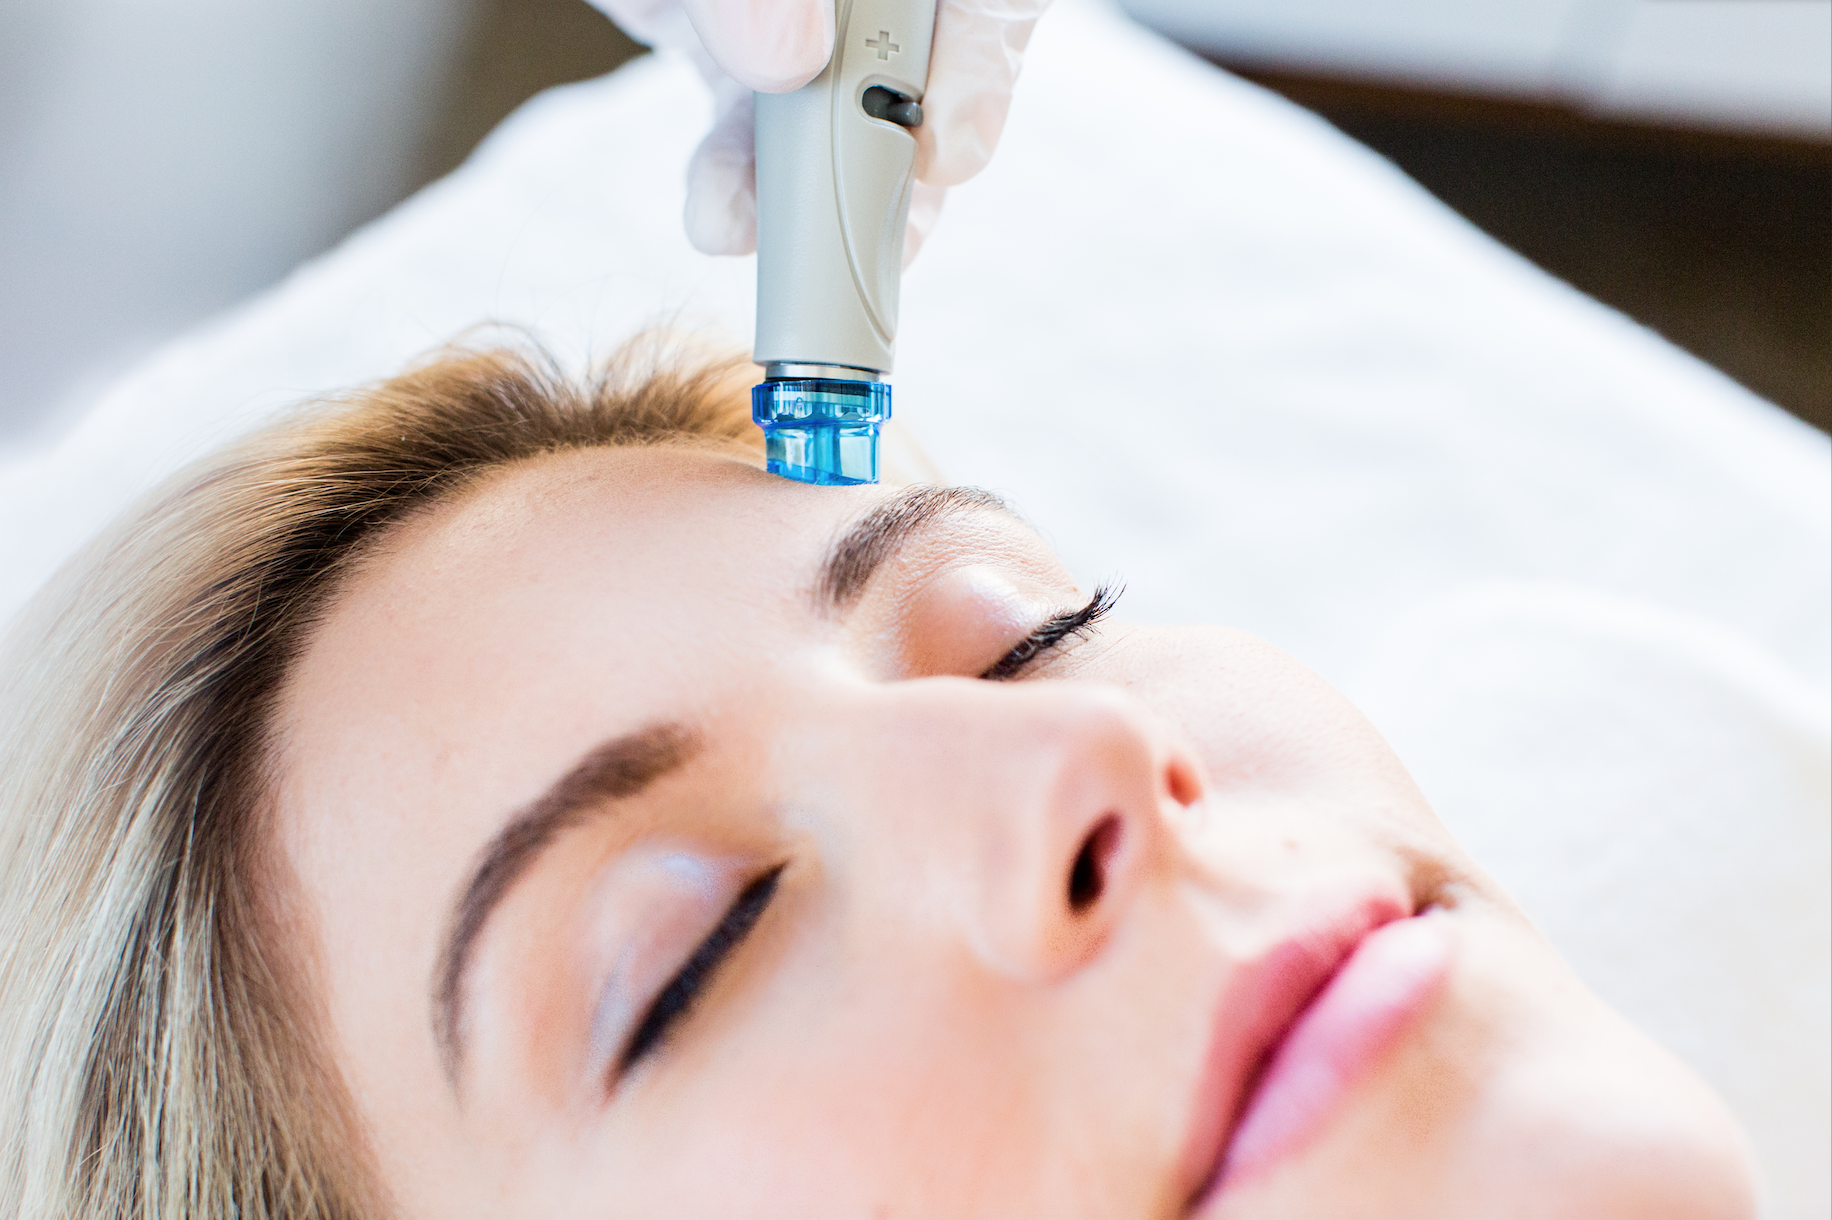 3 Distinct Benefits of the HydraFacials Offered at Nūr